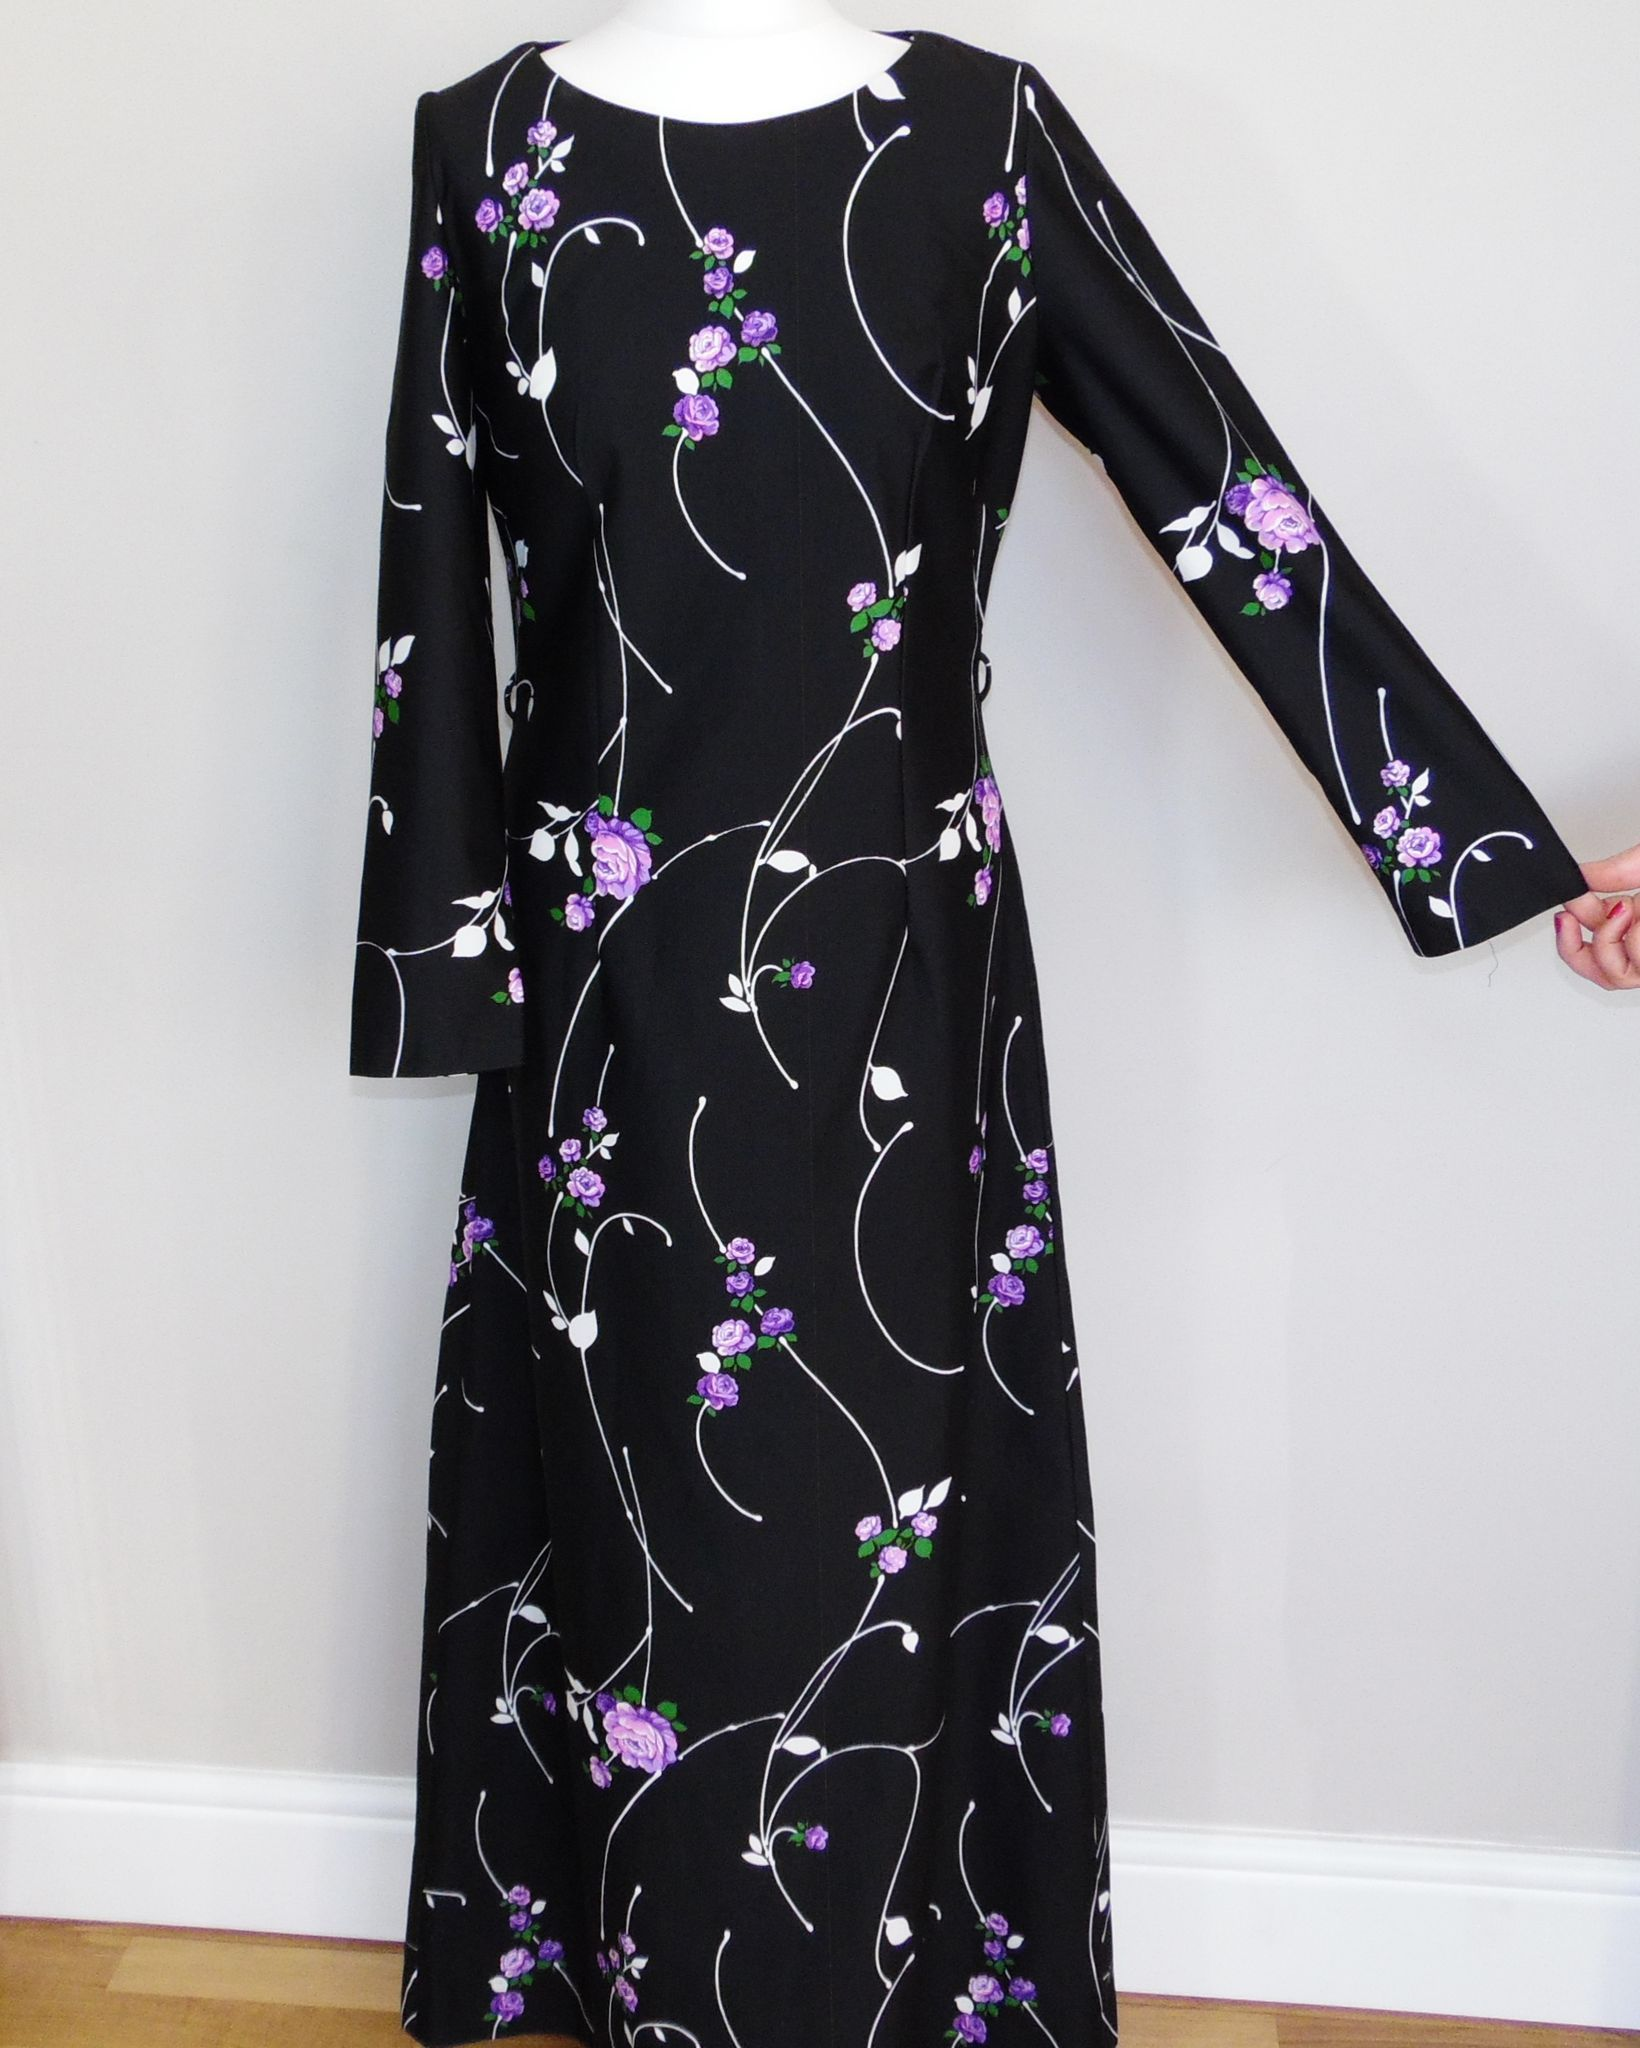 Maxi dresses are perfect for spring this long black maxi dress with